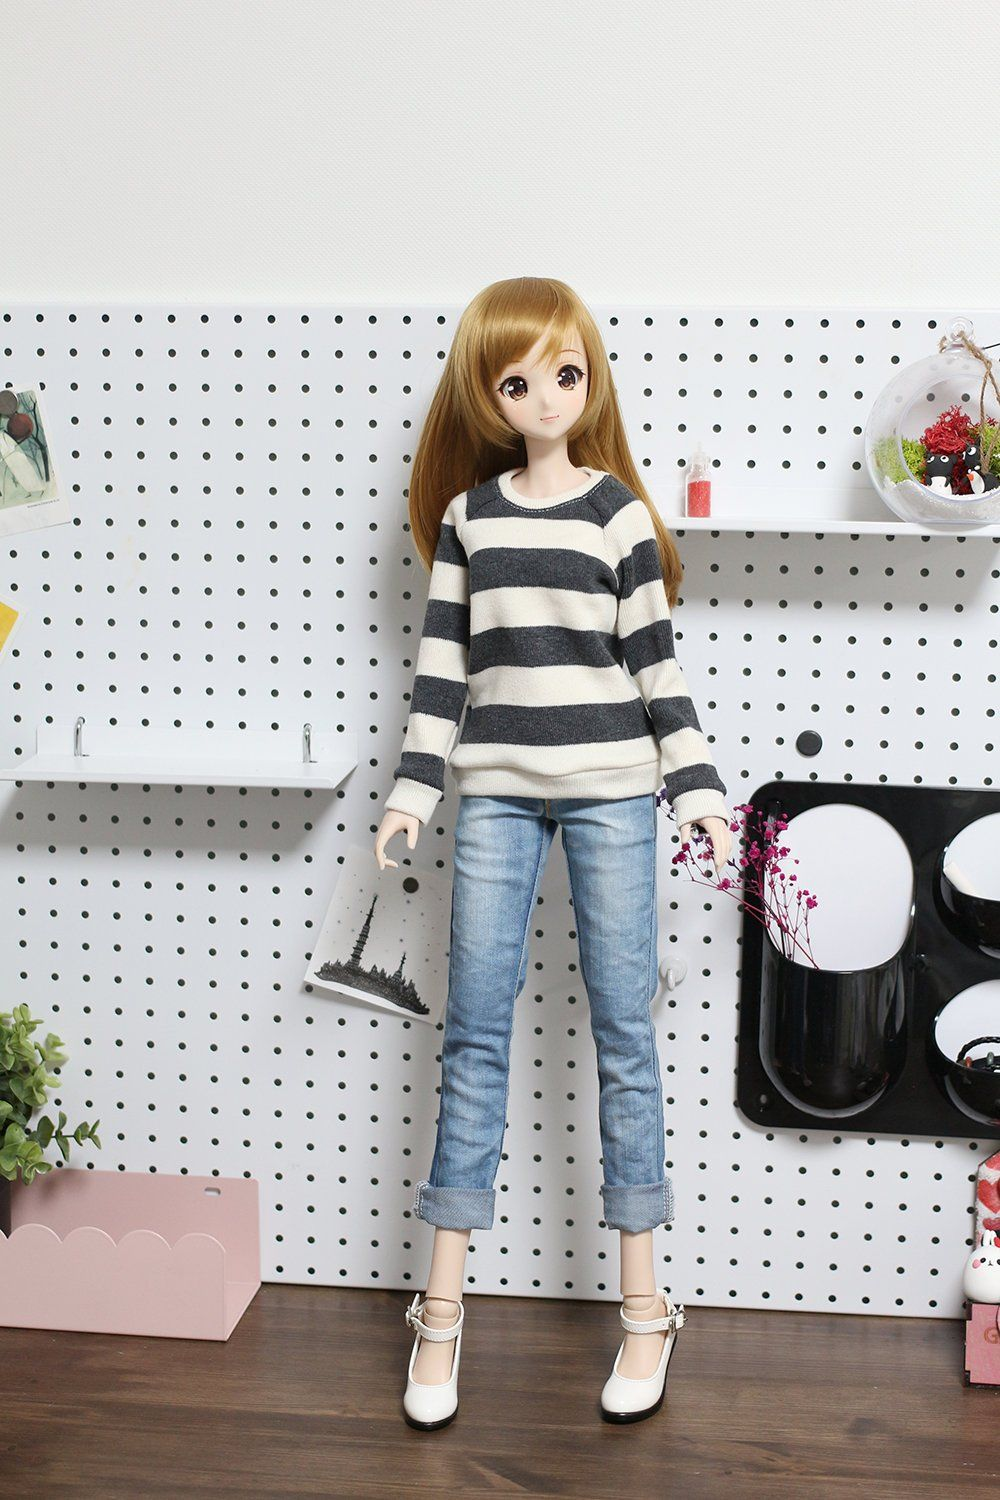 1/3 BJD Sd13 Smart doll clothes - Wide Striped long sleeves sweater 3 color